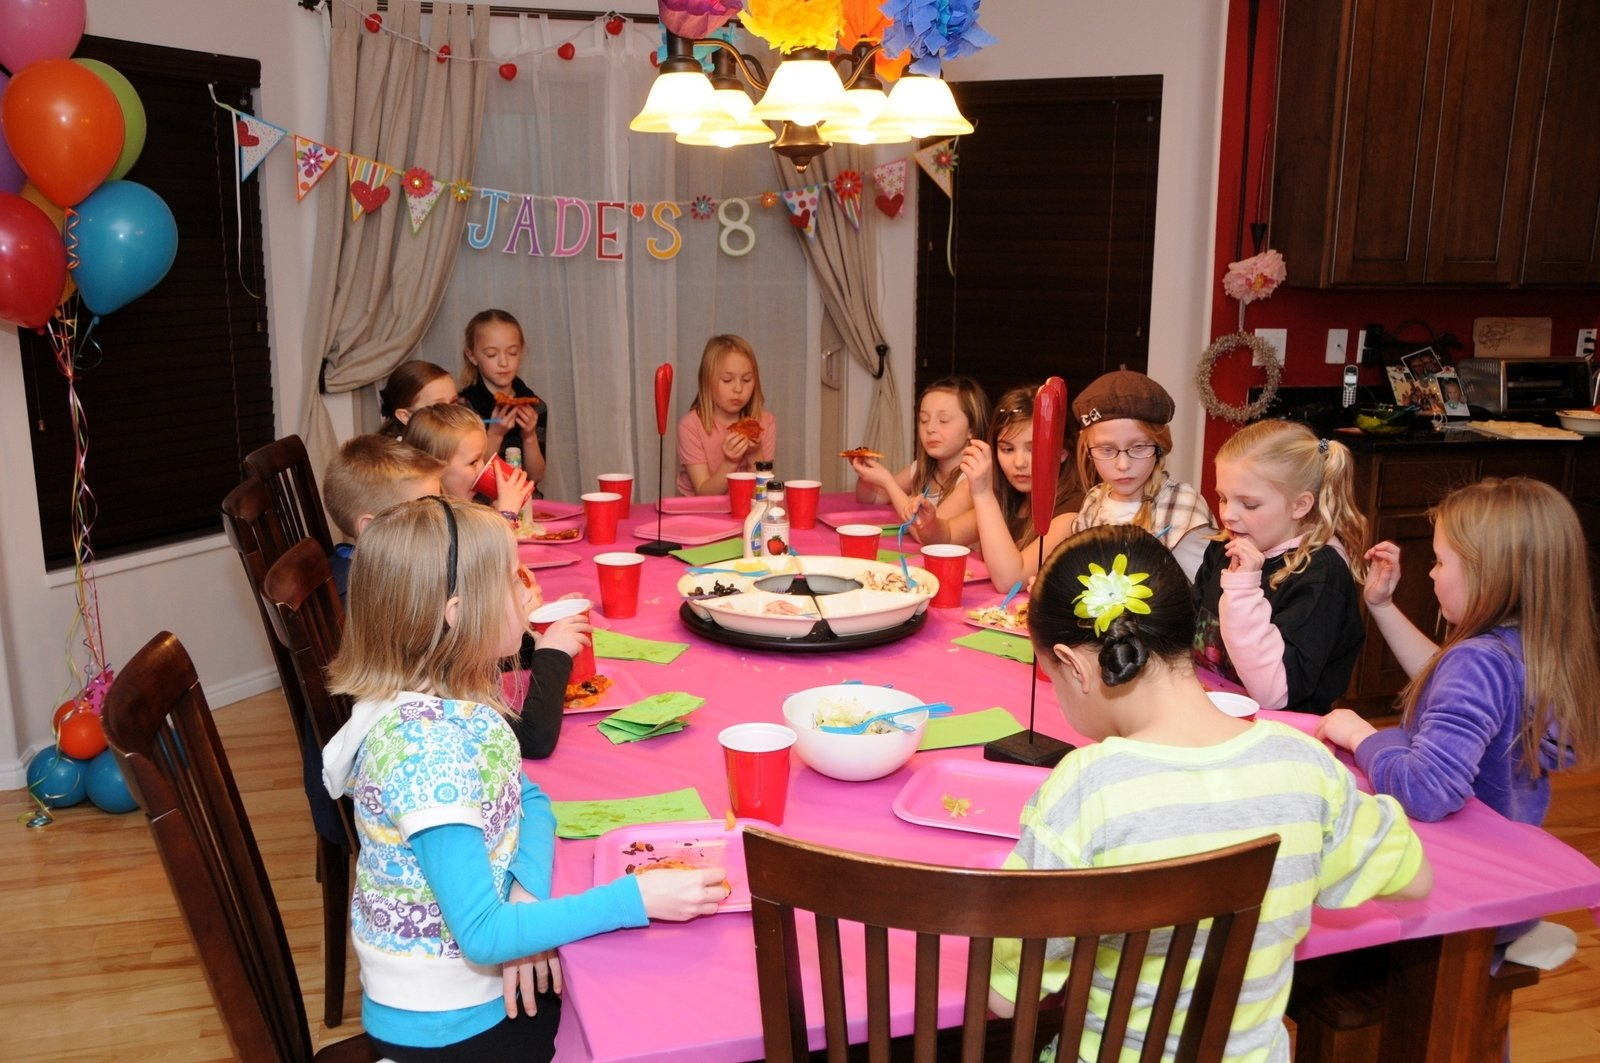 10 Gorgeous Birthday Ideas For 8 Year Old Girl 8 year old birthday party the family trifecta 7 2021